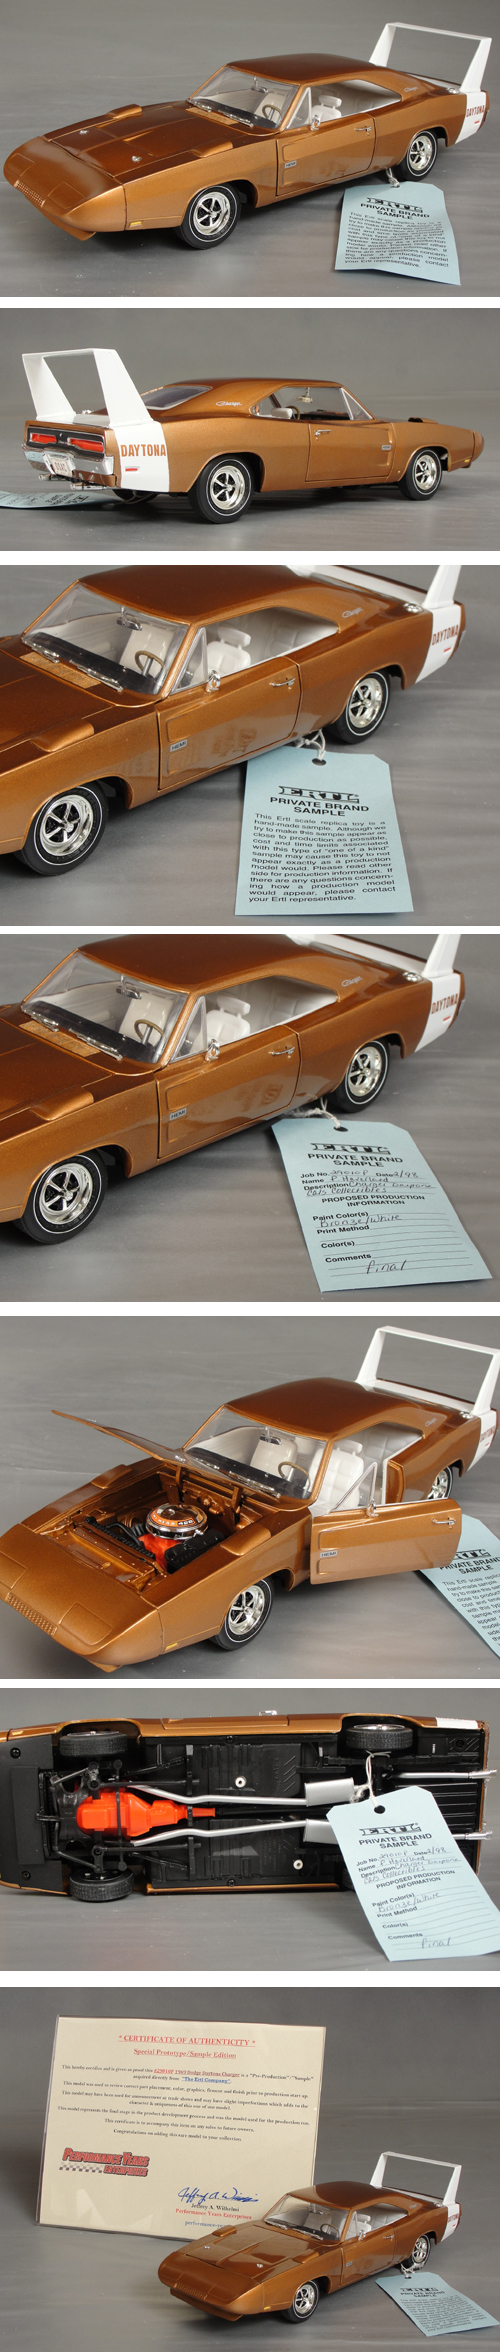 1969 Dodge Daytona Charger, Prototype Sample Car